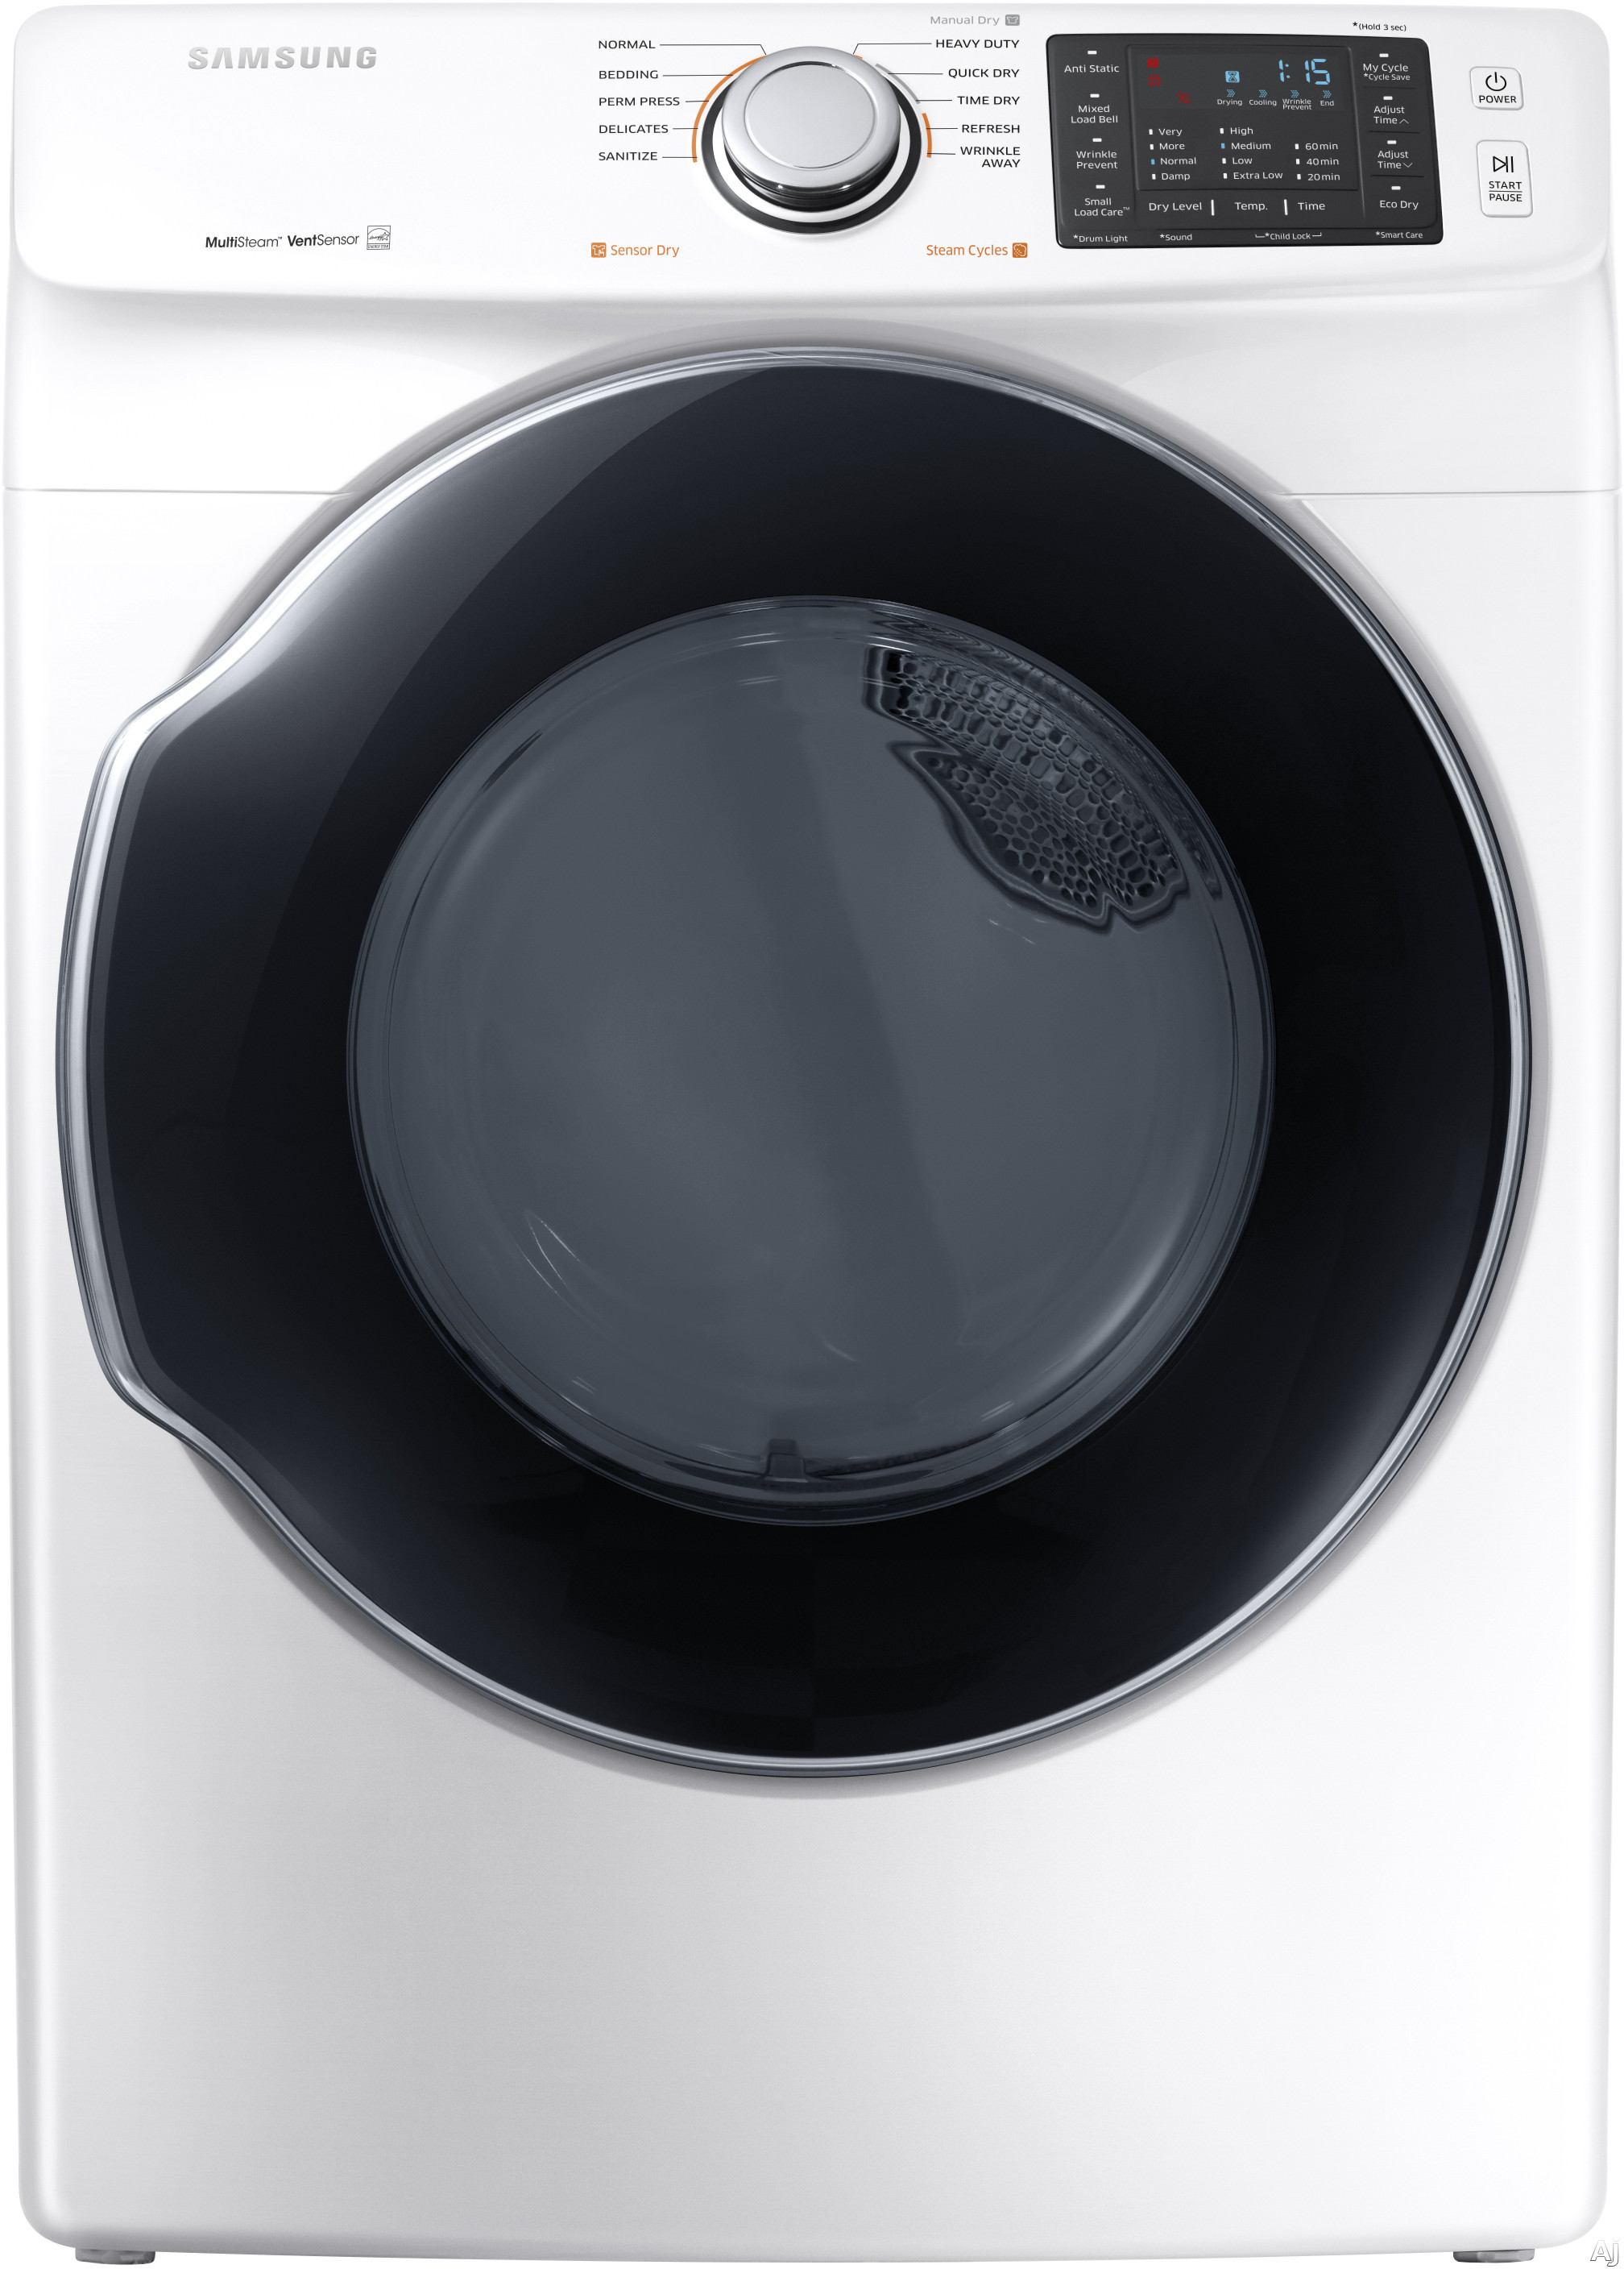 Samsung DVG45M5500 27 Inch Gas Dryer with Multi-Steam™ Technology, Wrinkle Prevent Option, Sensor Dry, 10 Dry Cycles, My Cycle Options, Anti-Static, Smart Care, 4-Way Venting, Reversible Door, Eco Dry, ENERGY STAR® and 7.5 cu. ft. Capacity